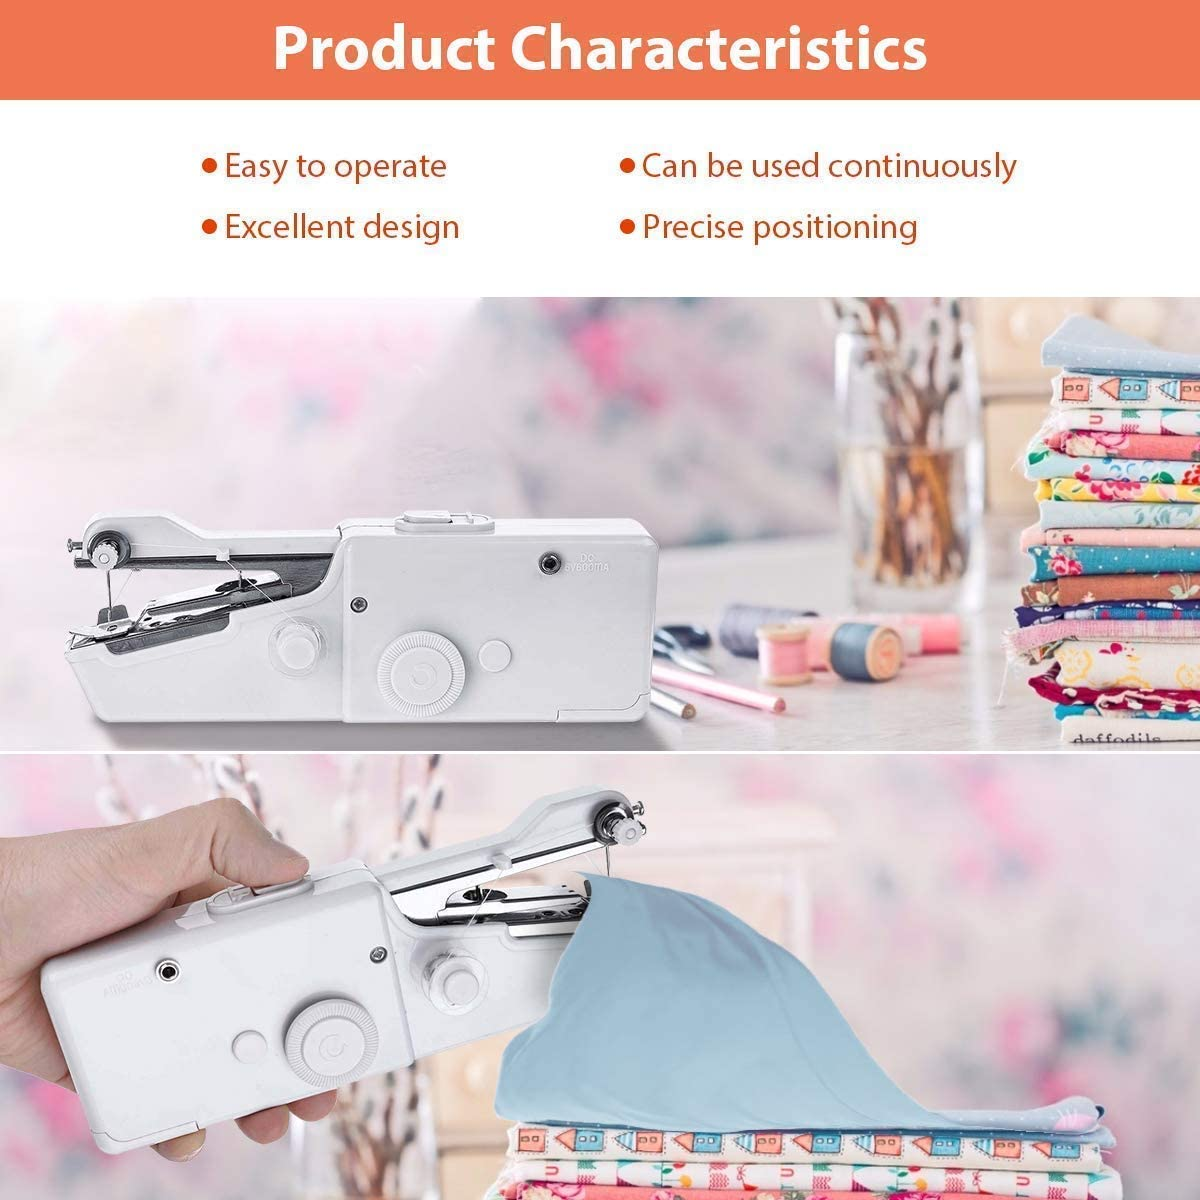 Handheld Sewing Machine Yibaision Portable Stitching Machine Cordless Craft Mini Beginner Sewing Machine Fit DIY Curtains Pet Clothes Home Travel with Extra Bobbin Needle and Threade